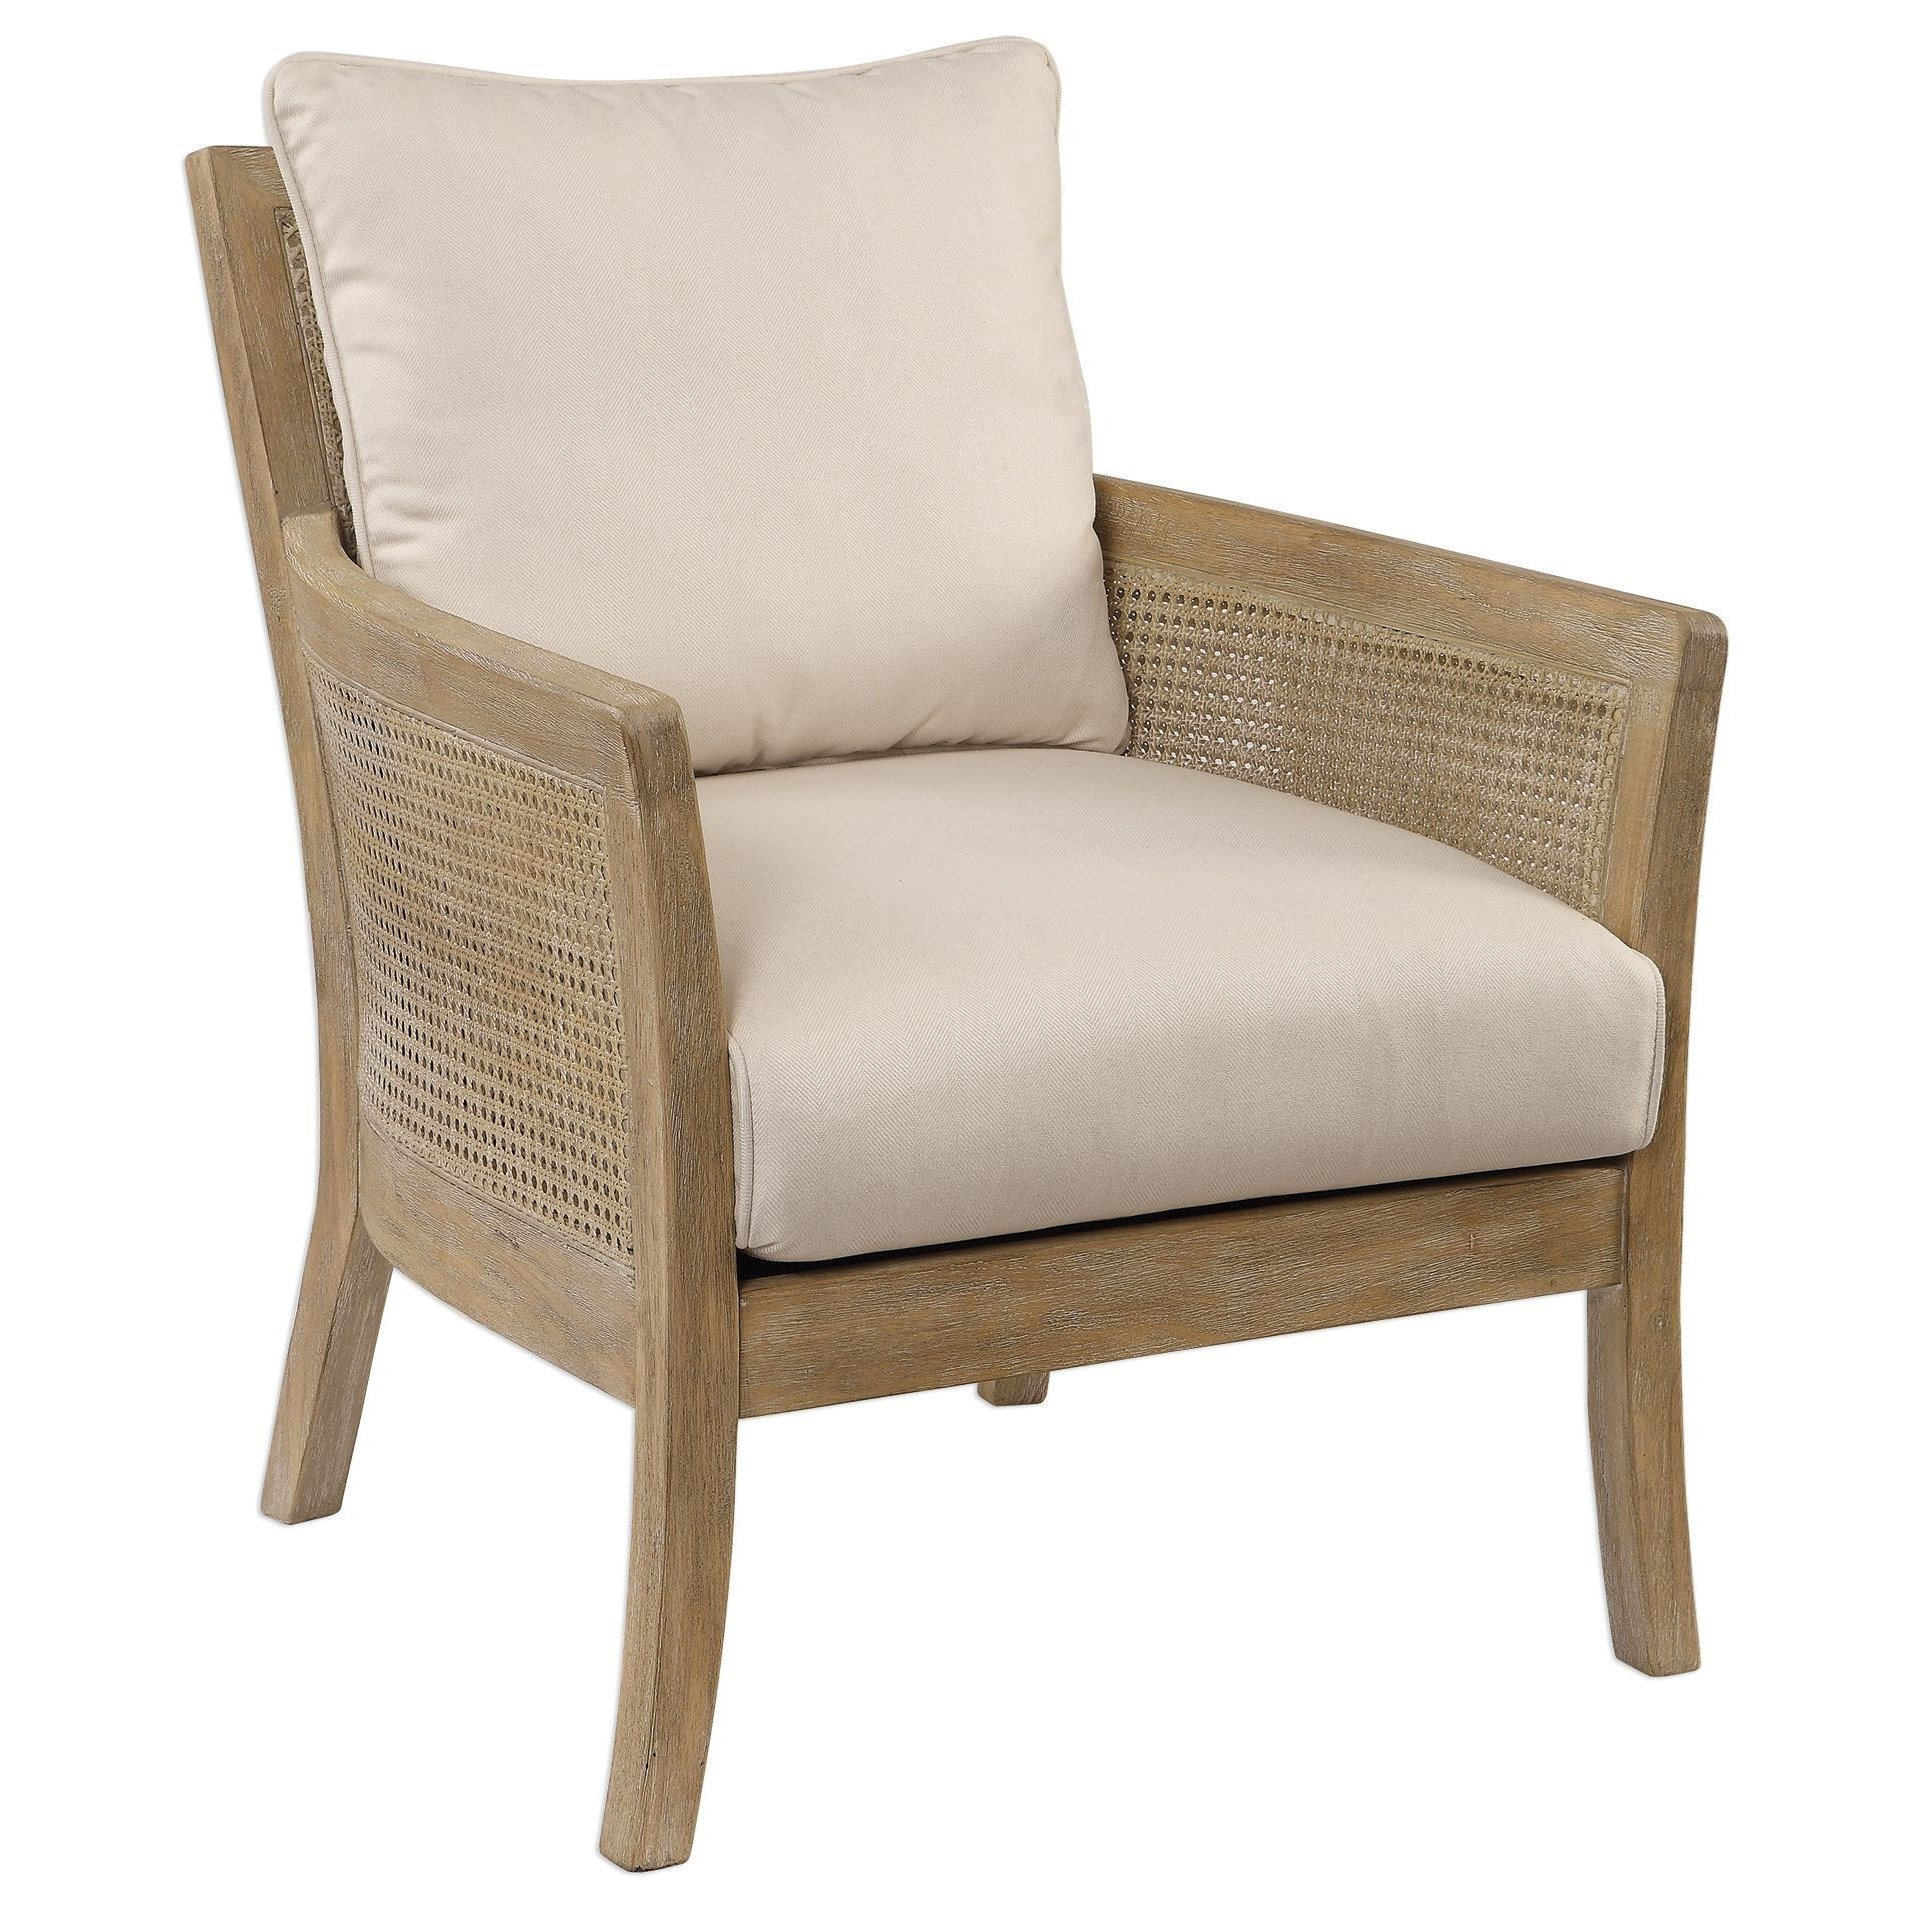 Accent Furniture - Accent Chairs Encore Natural Armchair by Uttermost at Reid's Furniture